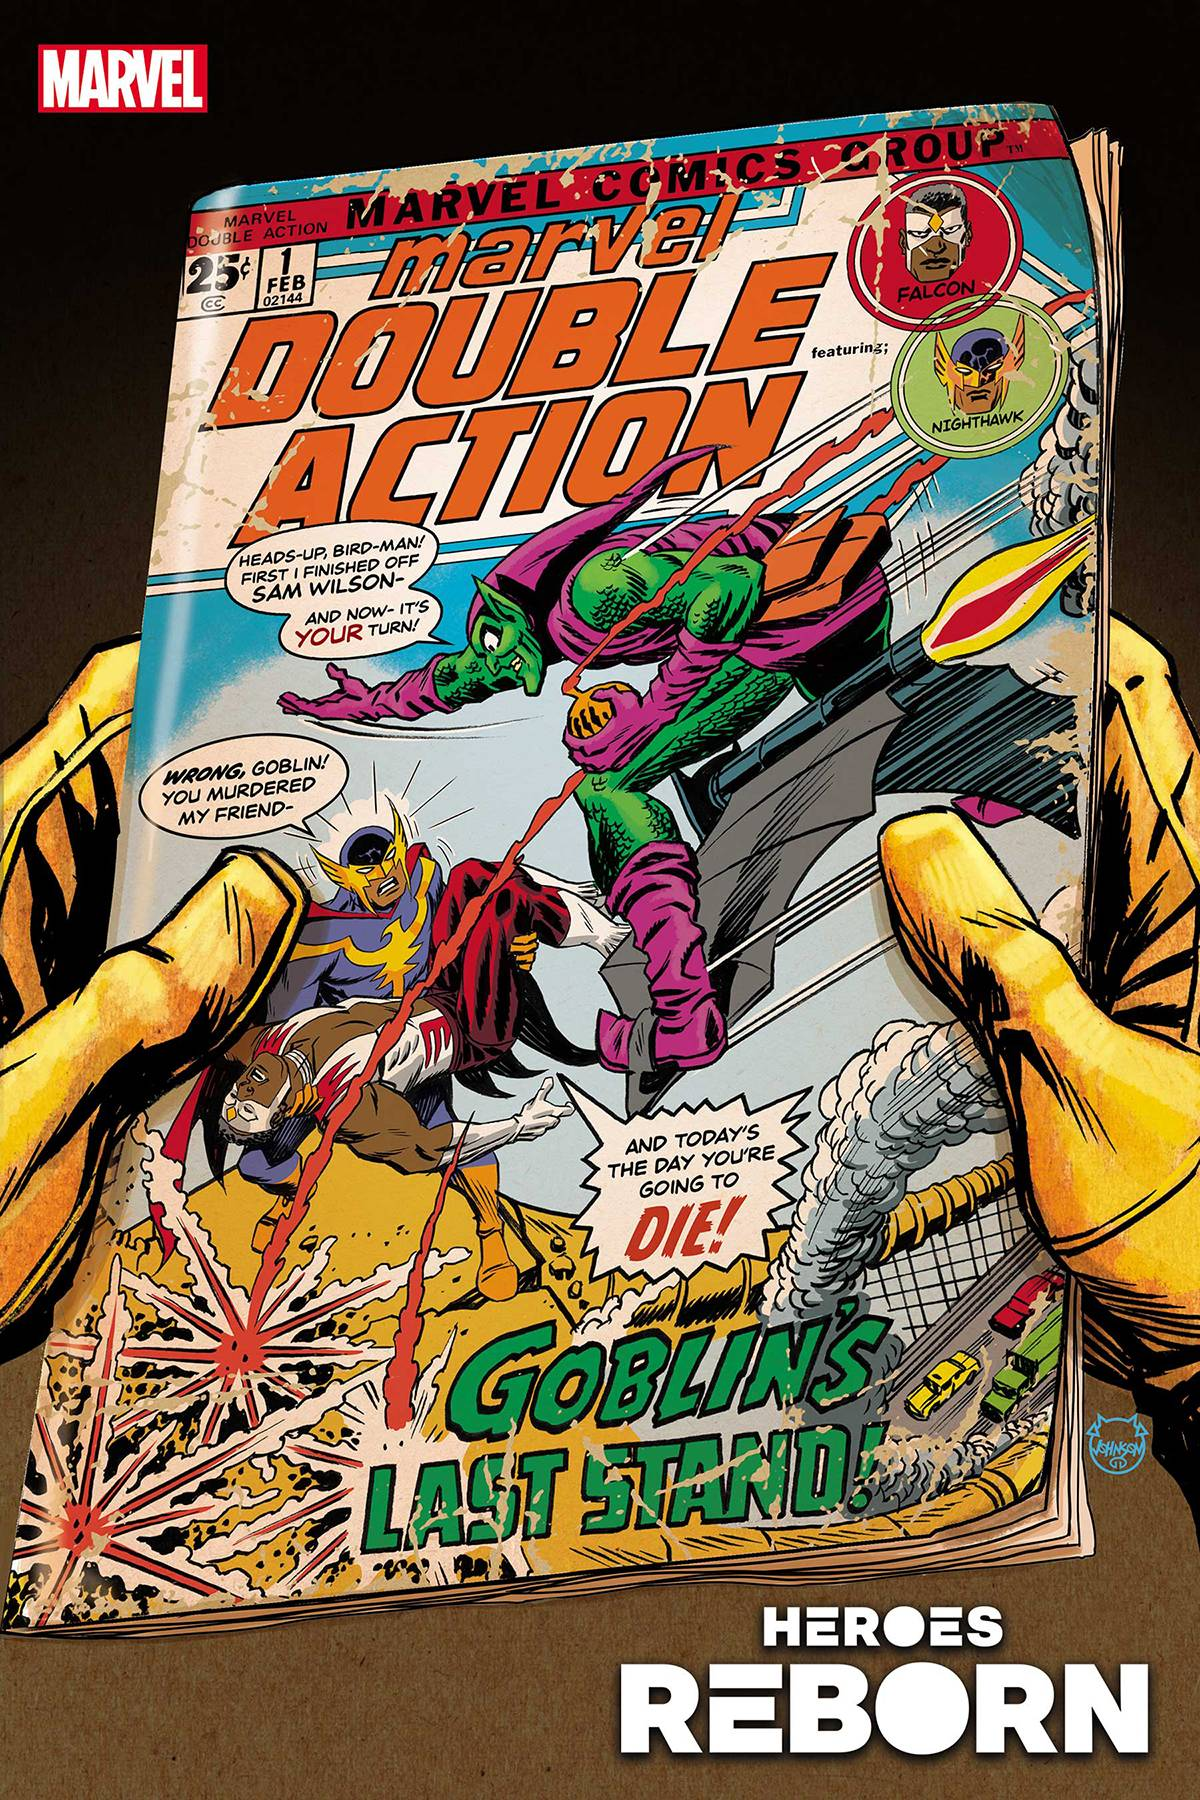 Heroes Reborn: Marvel Double Action #1 Cover A